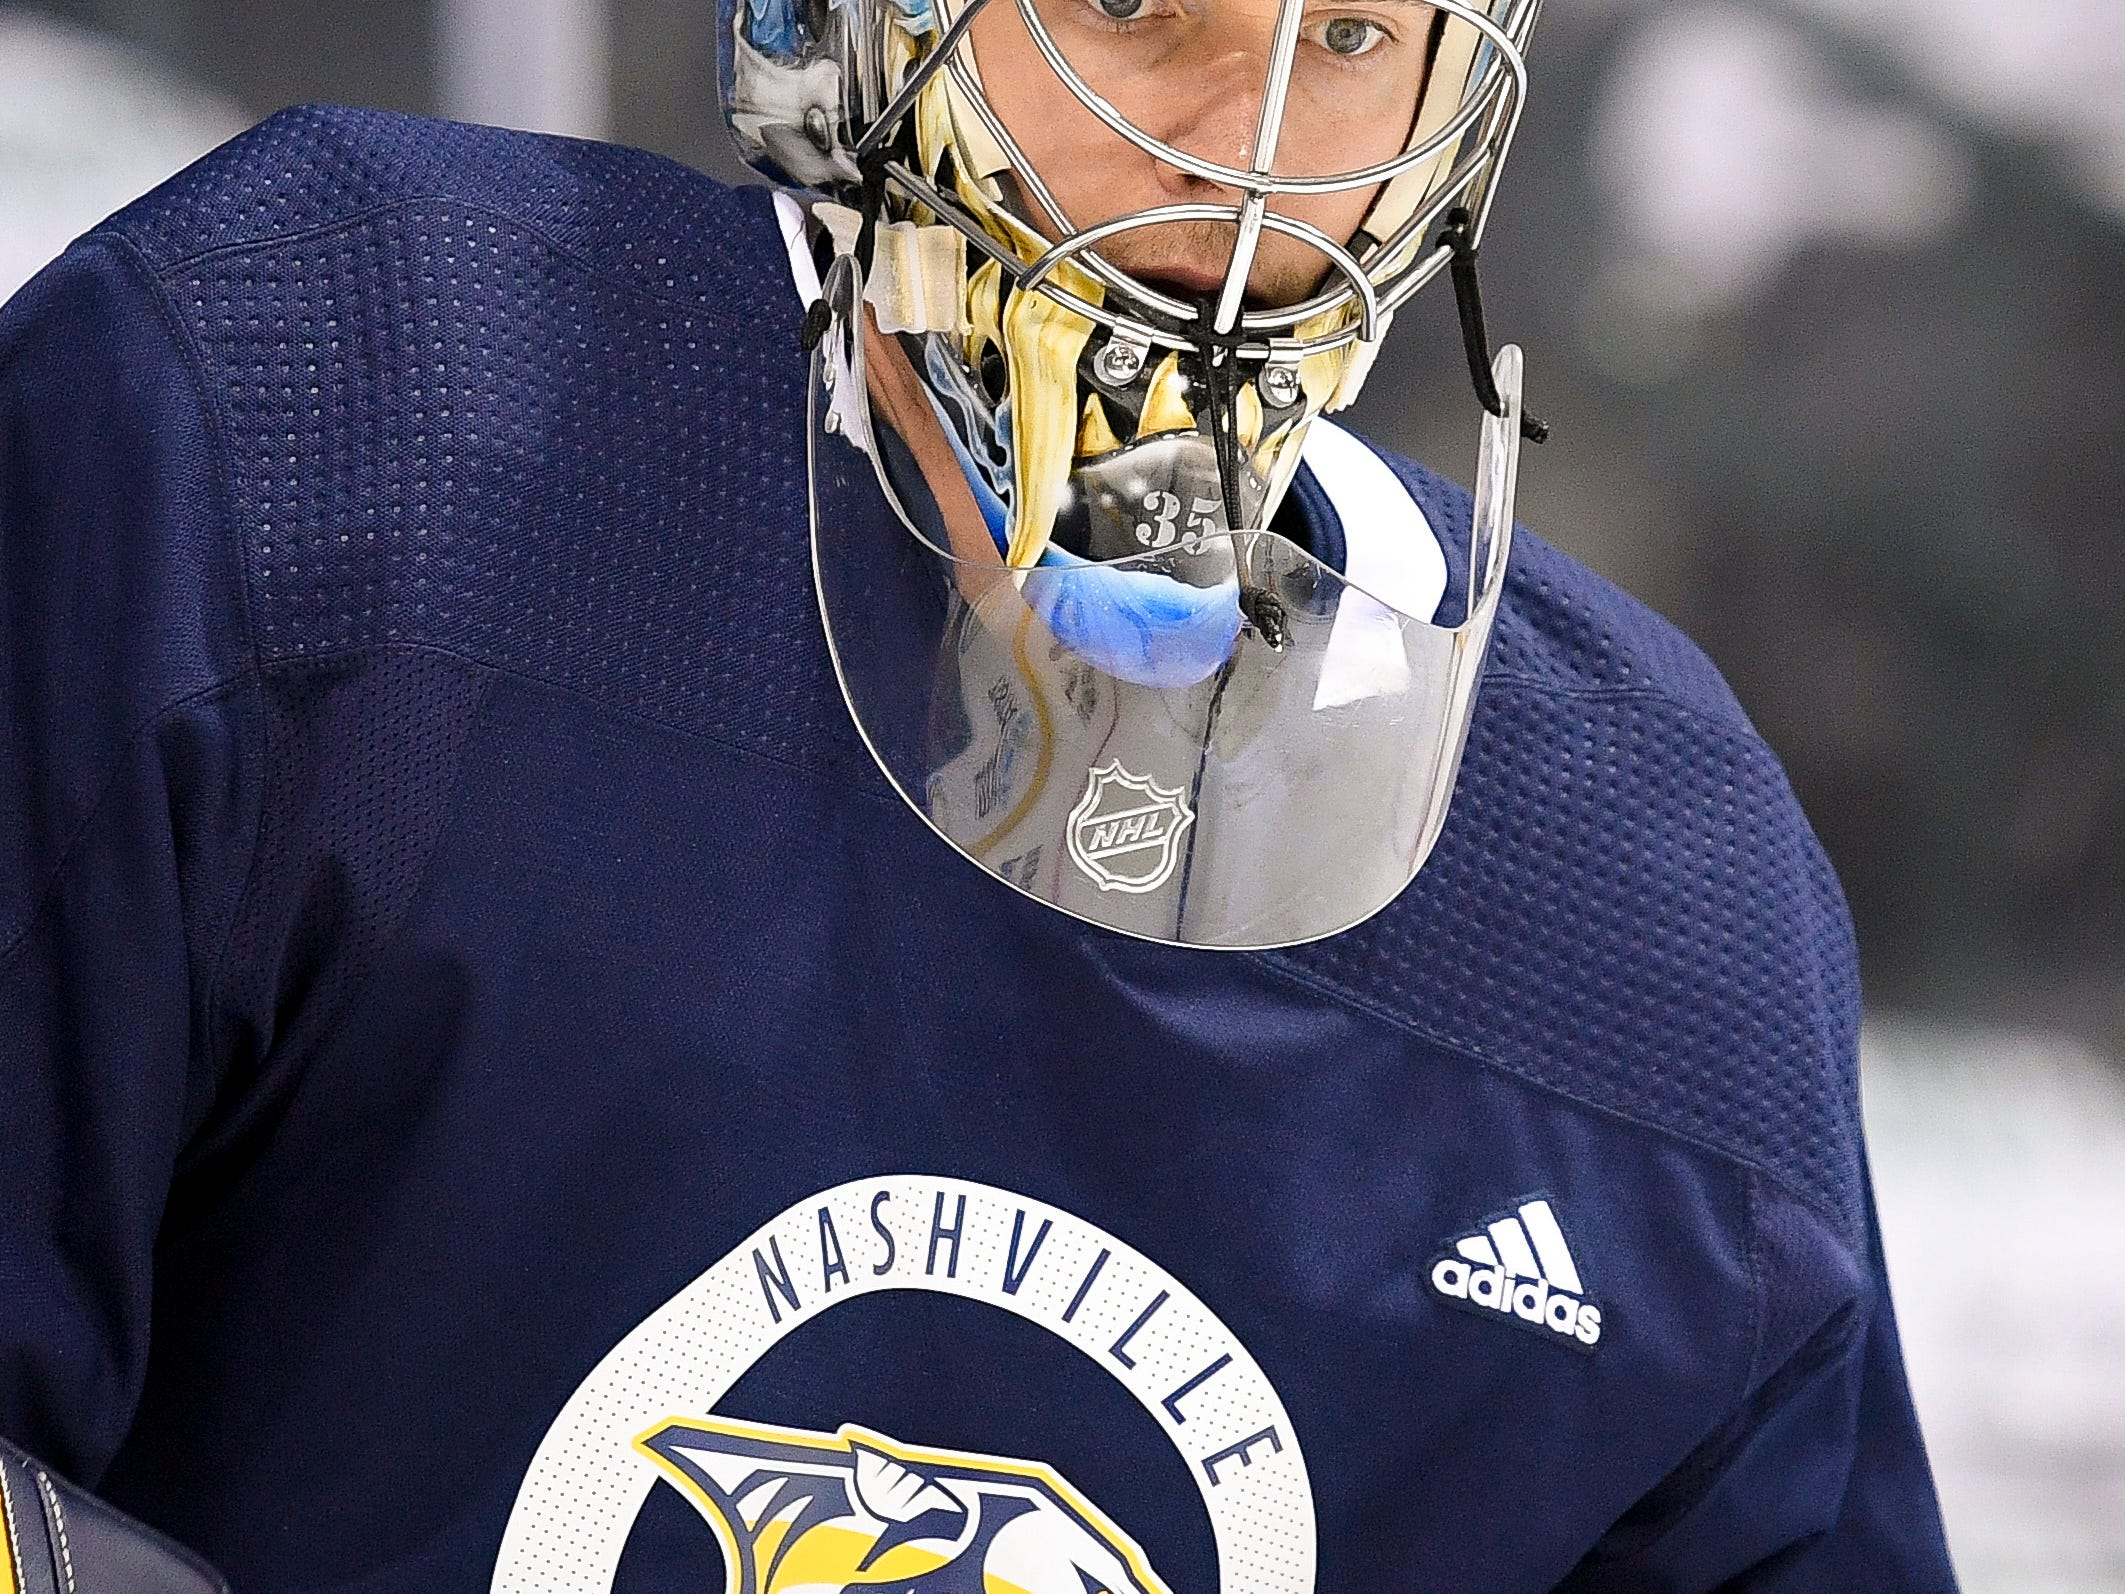 Nashville Predators goaltender Pekka Rinne (35) warms up during practice before the divisional semifinal game at the American Airlines Center in Dallas, Texas., Monday, April 15, 2019.